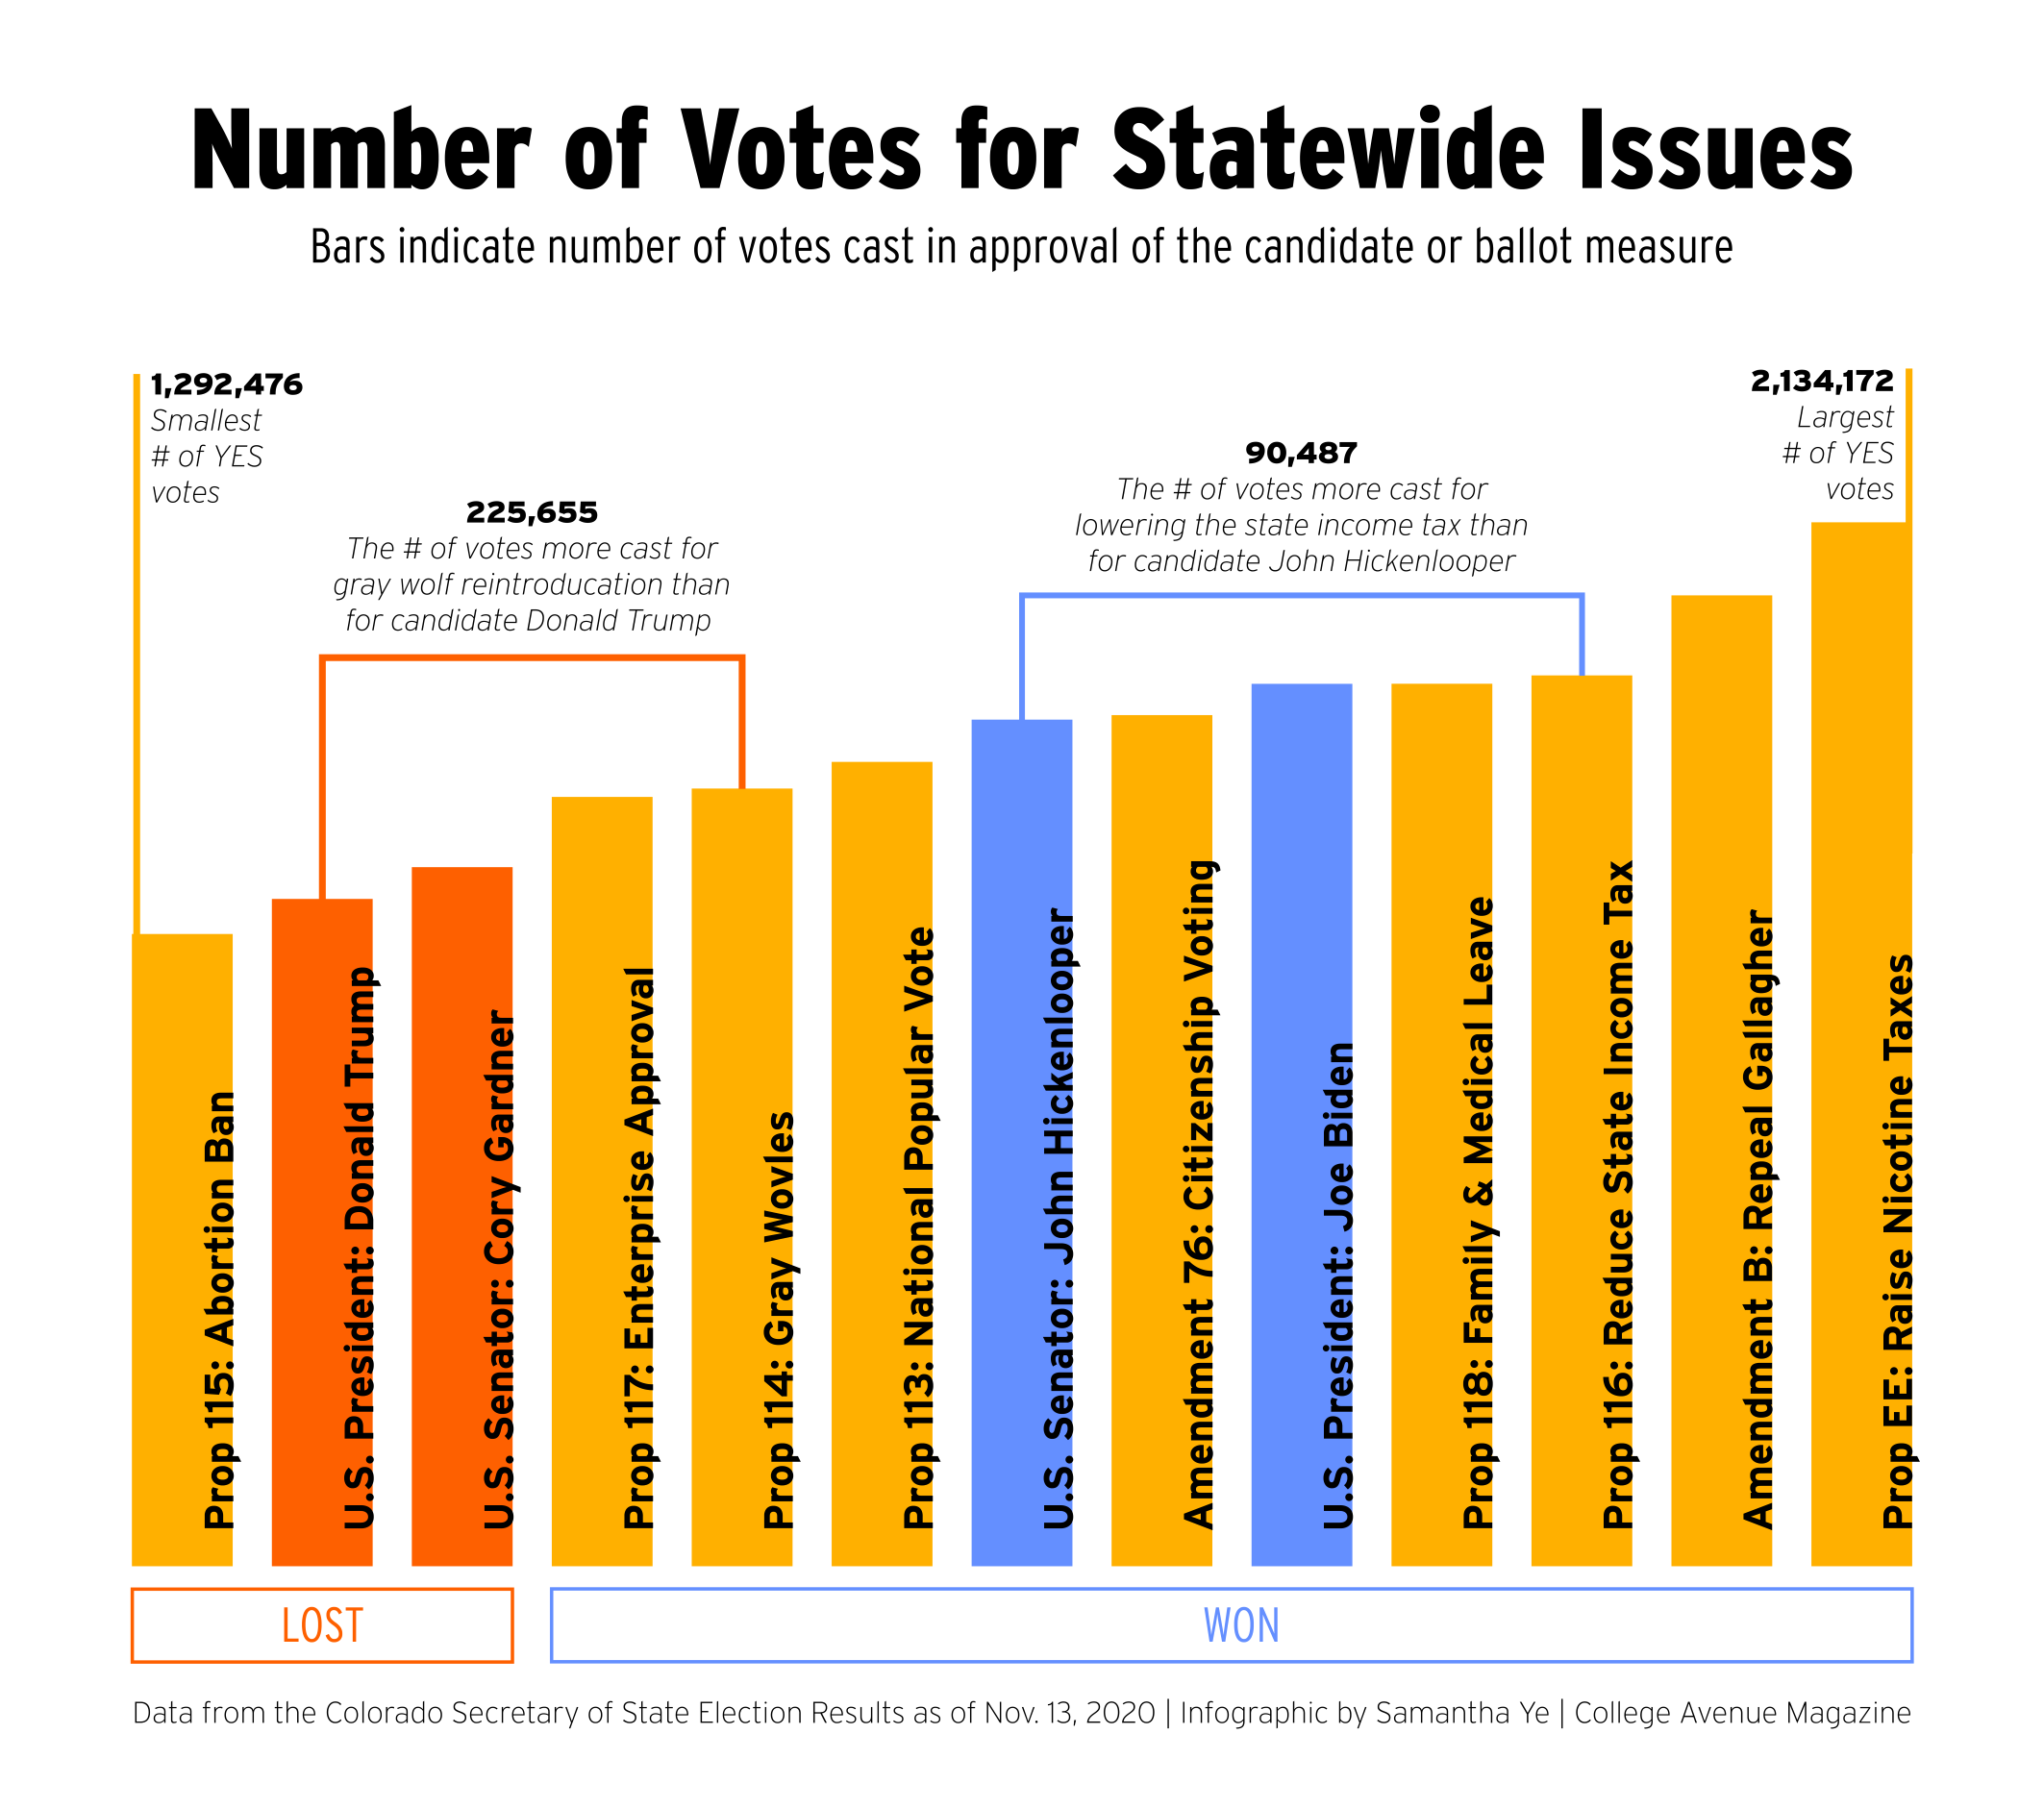 Number of Votes for Statewide Issues